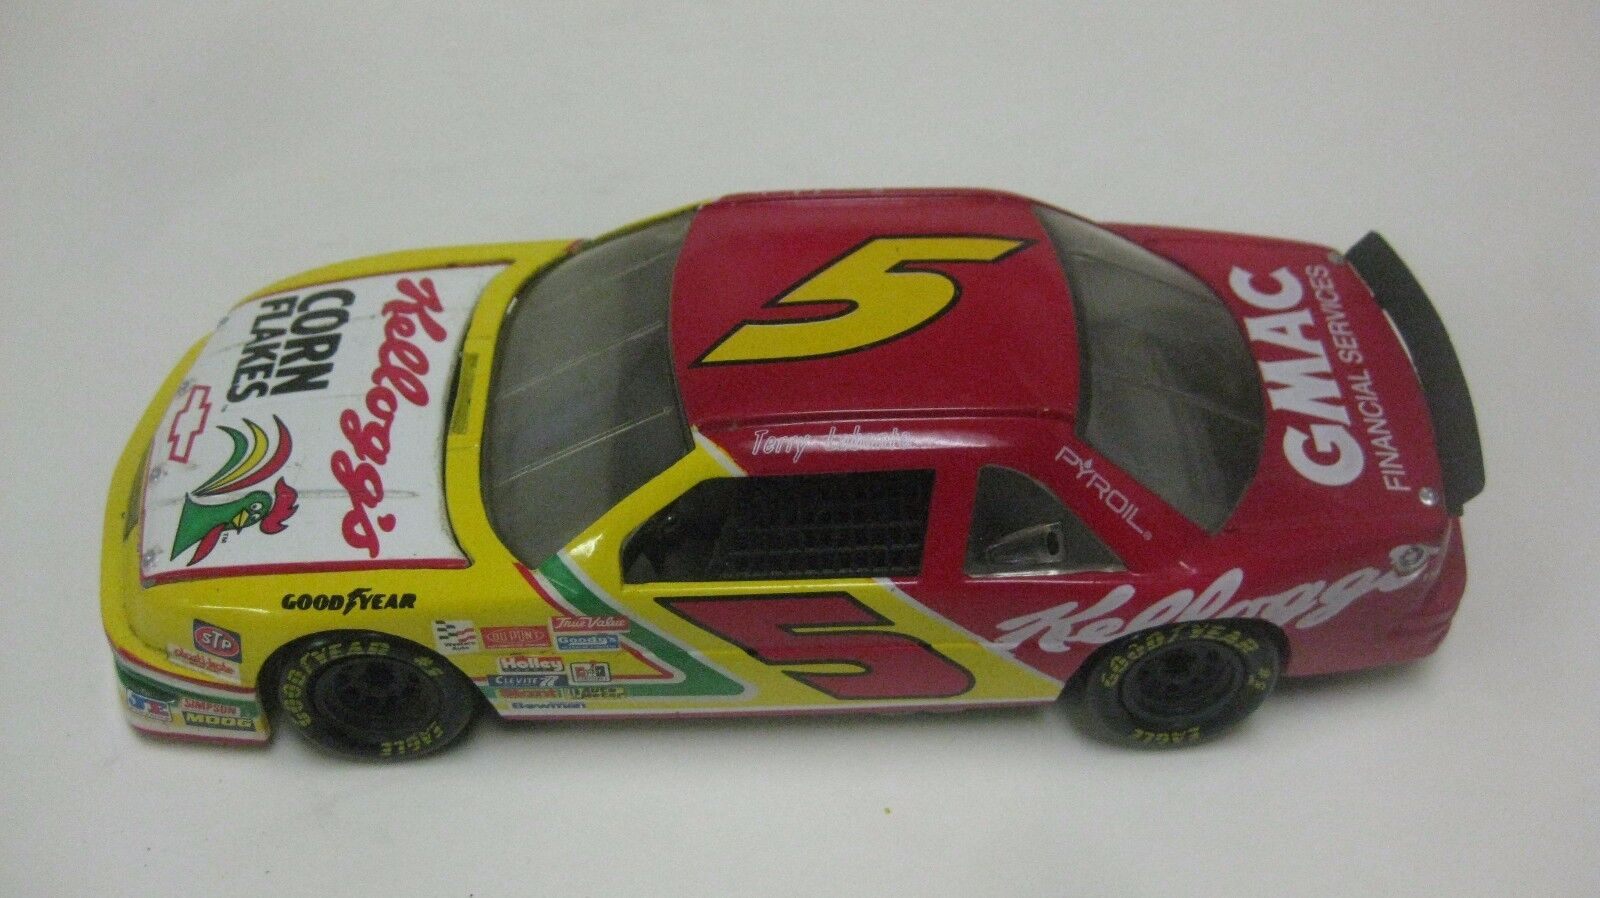 Nascar Terry Labonte In A Monte Carlo 1 24 Scale Diecast From RC 1993 dc1581